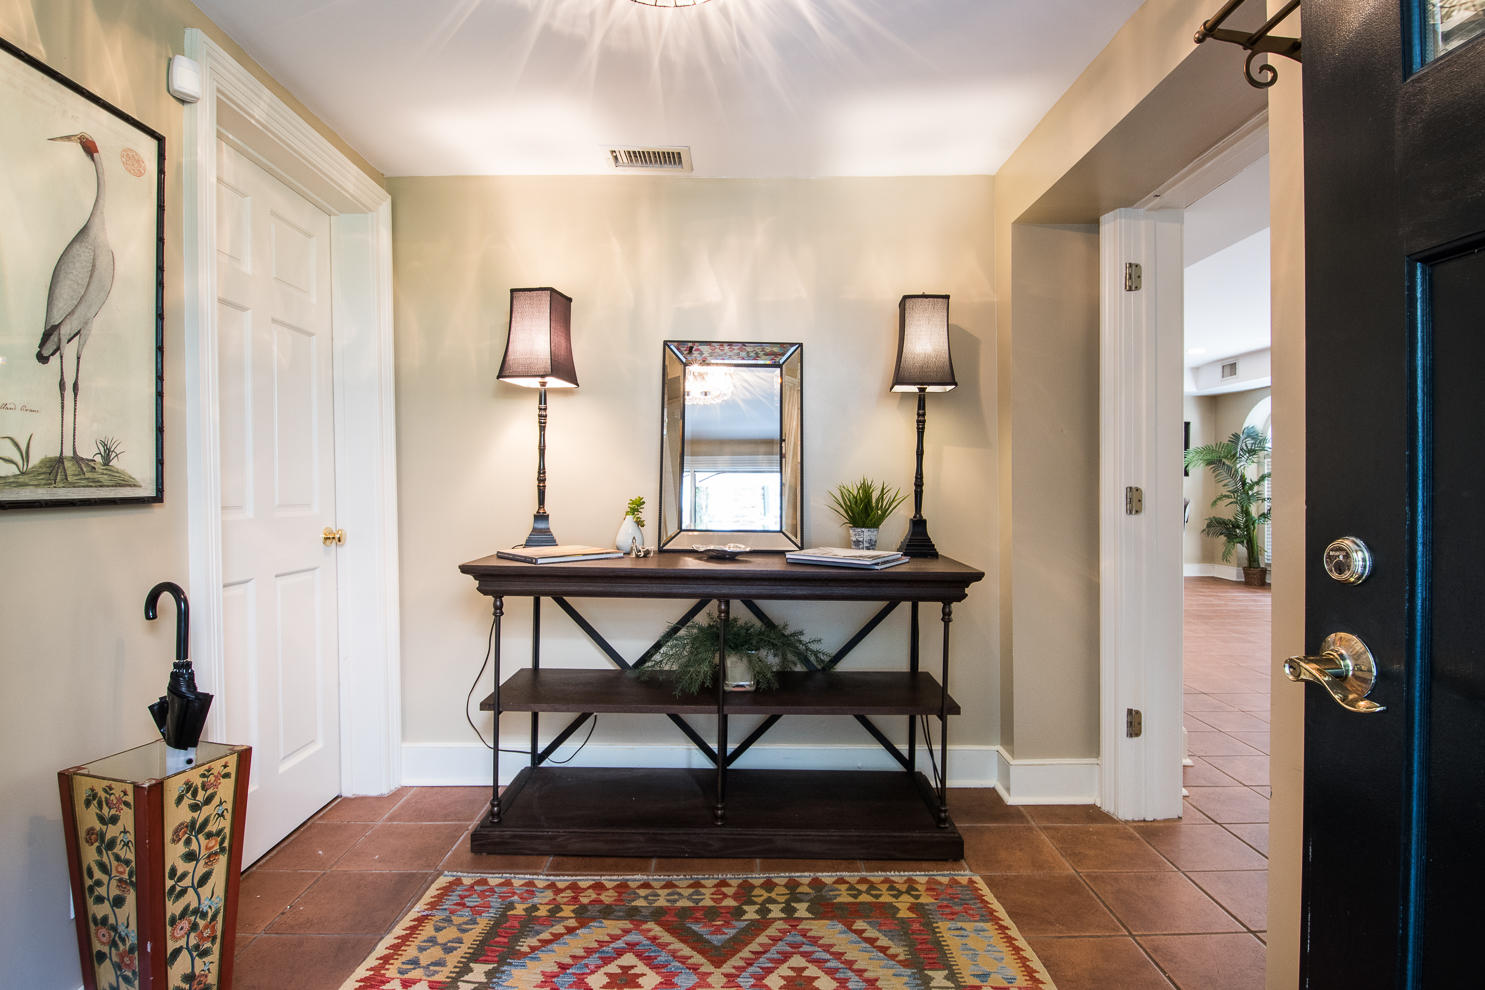 South of Broad Homes For Sale - 1 Prices, Charleston, SC - 44